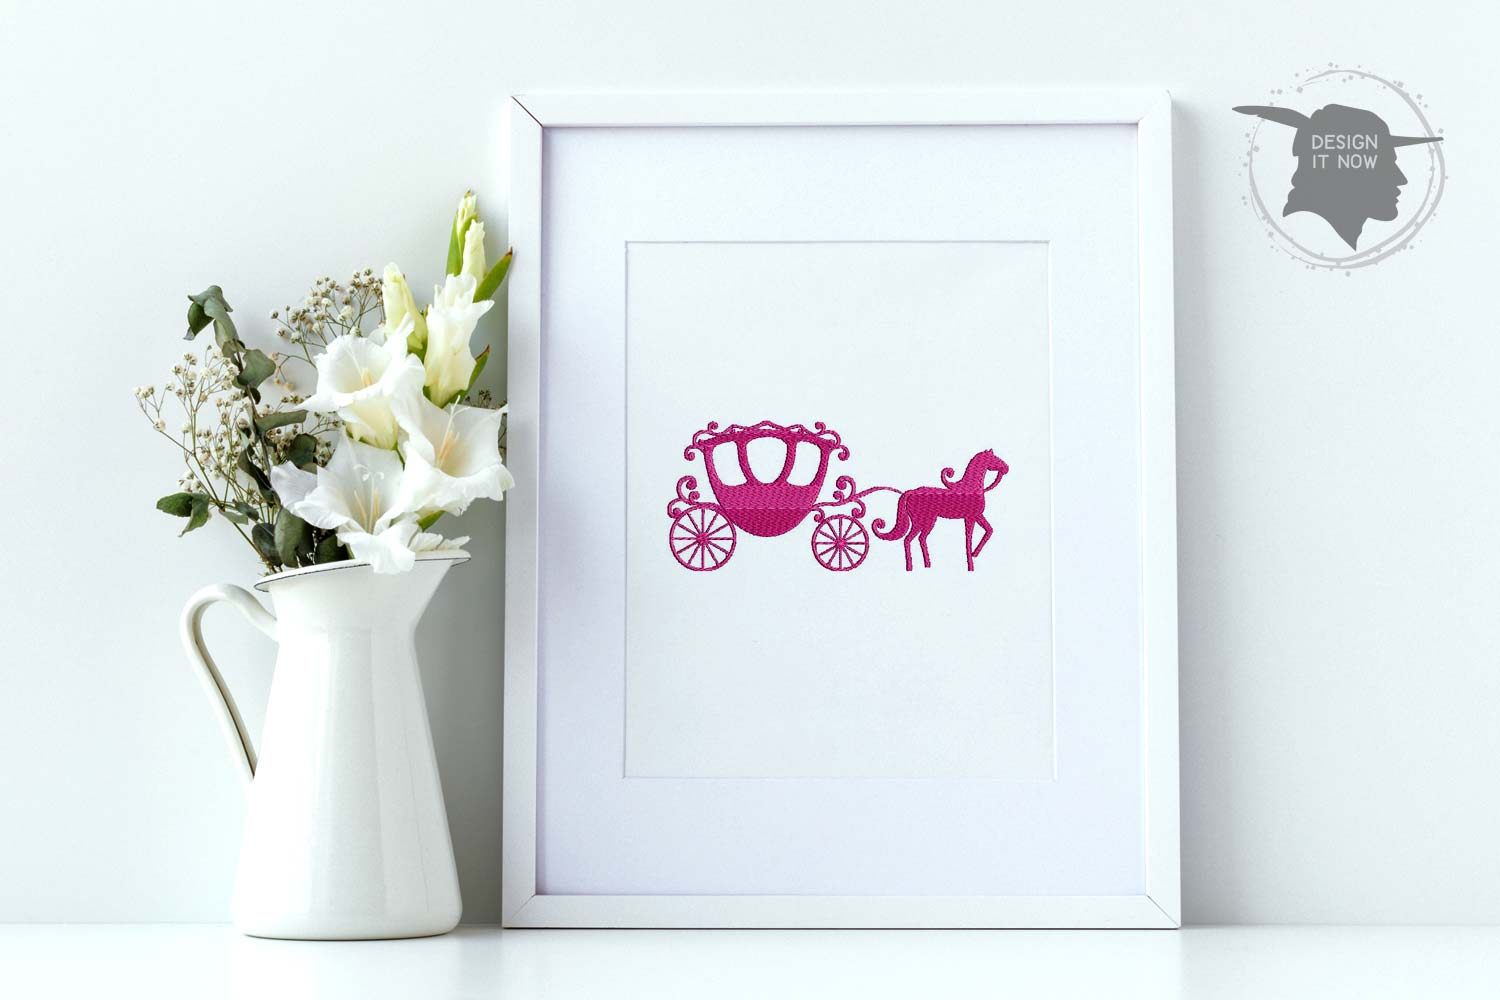 Princess Carriage Embroidery Design, Crown Embroidery, Queen example image 1